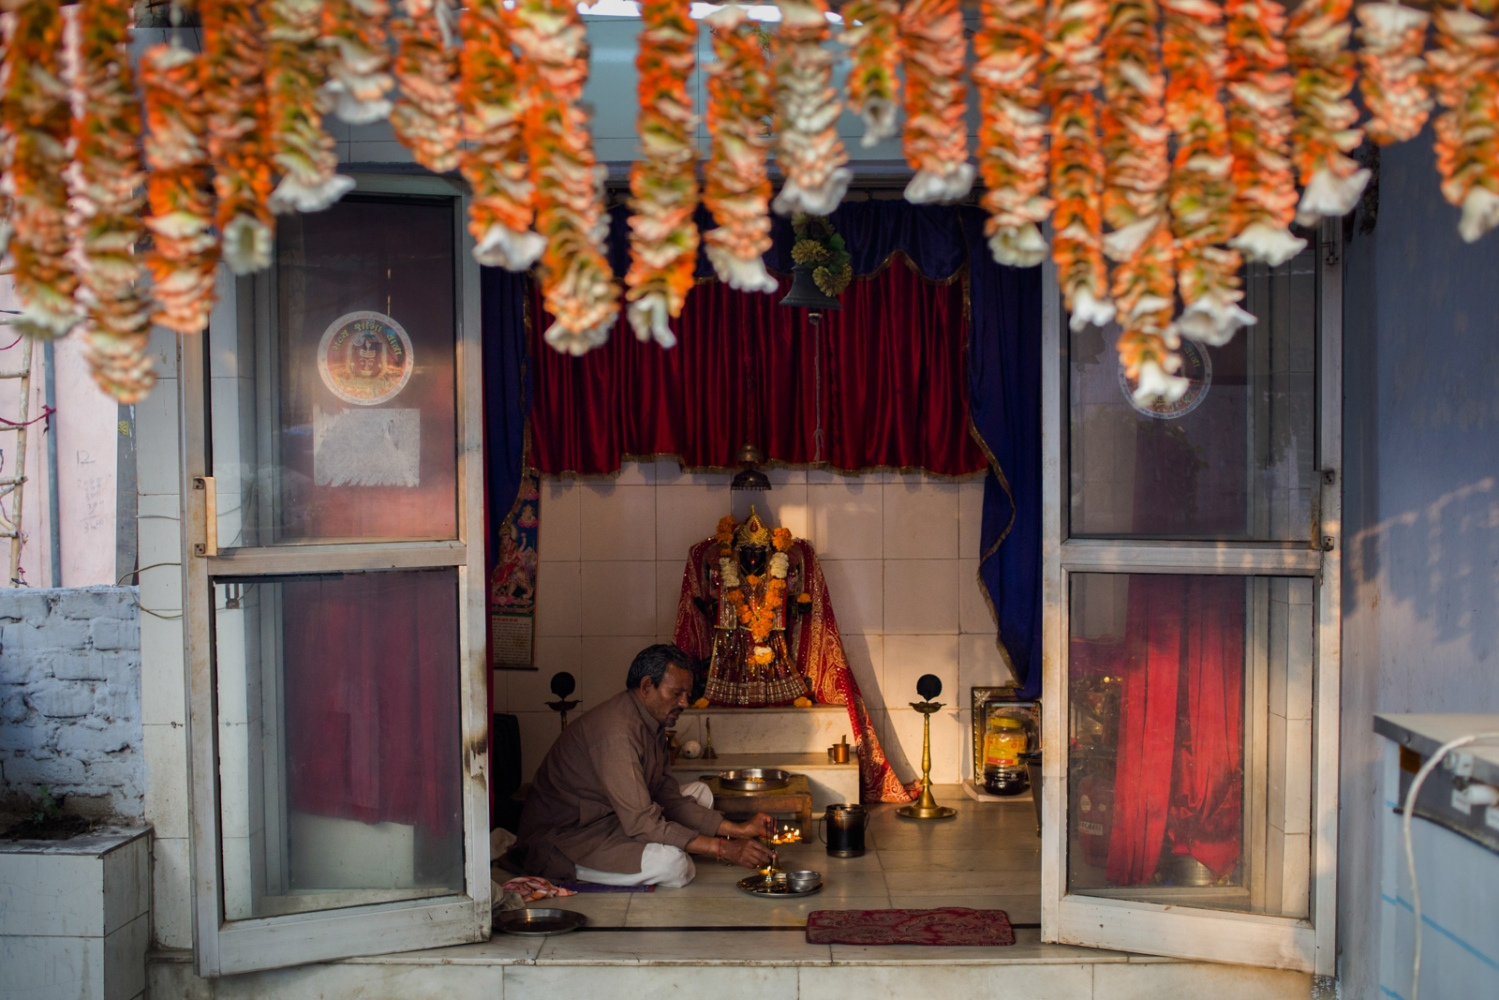 "Indian Hindu priest Pandit Madan Mohan Mishra, 42, offers a daily morning prayer during a puja ceremony at the Kalimata Mandir temple at a dhobi ghat outdoor laundry where he lives with his family in New Delhi on March 18, 2015. ""Kali is my god. The whole world is under Kali. I am not a rich man, but I am the priest here in this area. I do this puja every morning at 7am and offer prayers for my family and for all people here."" Mishra offers prasad, or sweets used as temple offerings, that he has blessed to washermen working at the ghat after each morning ceremony."